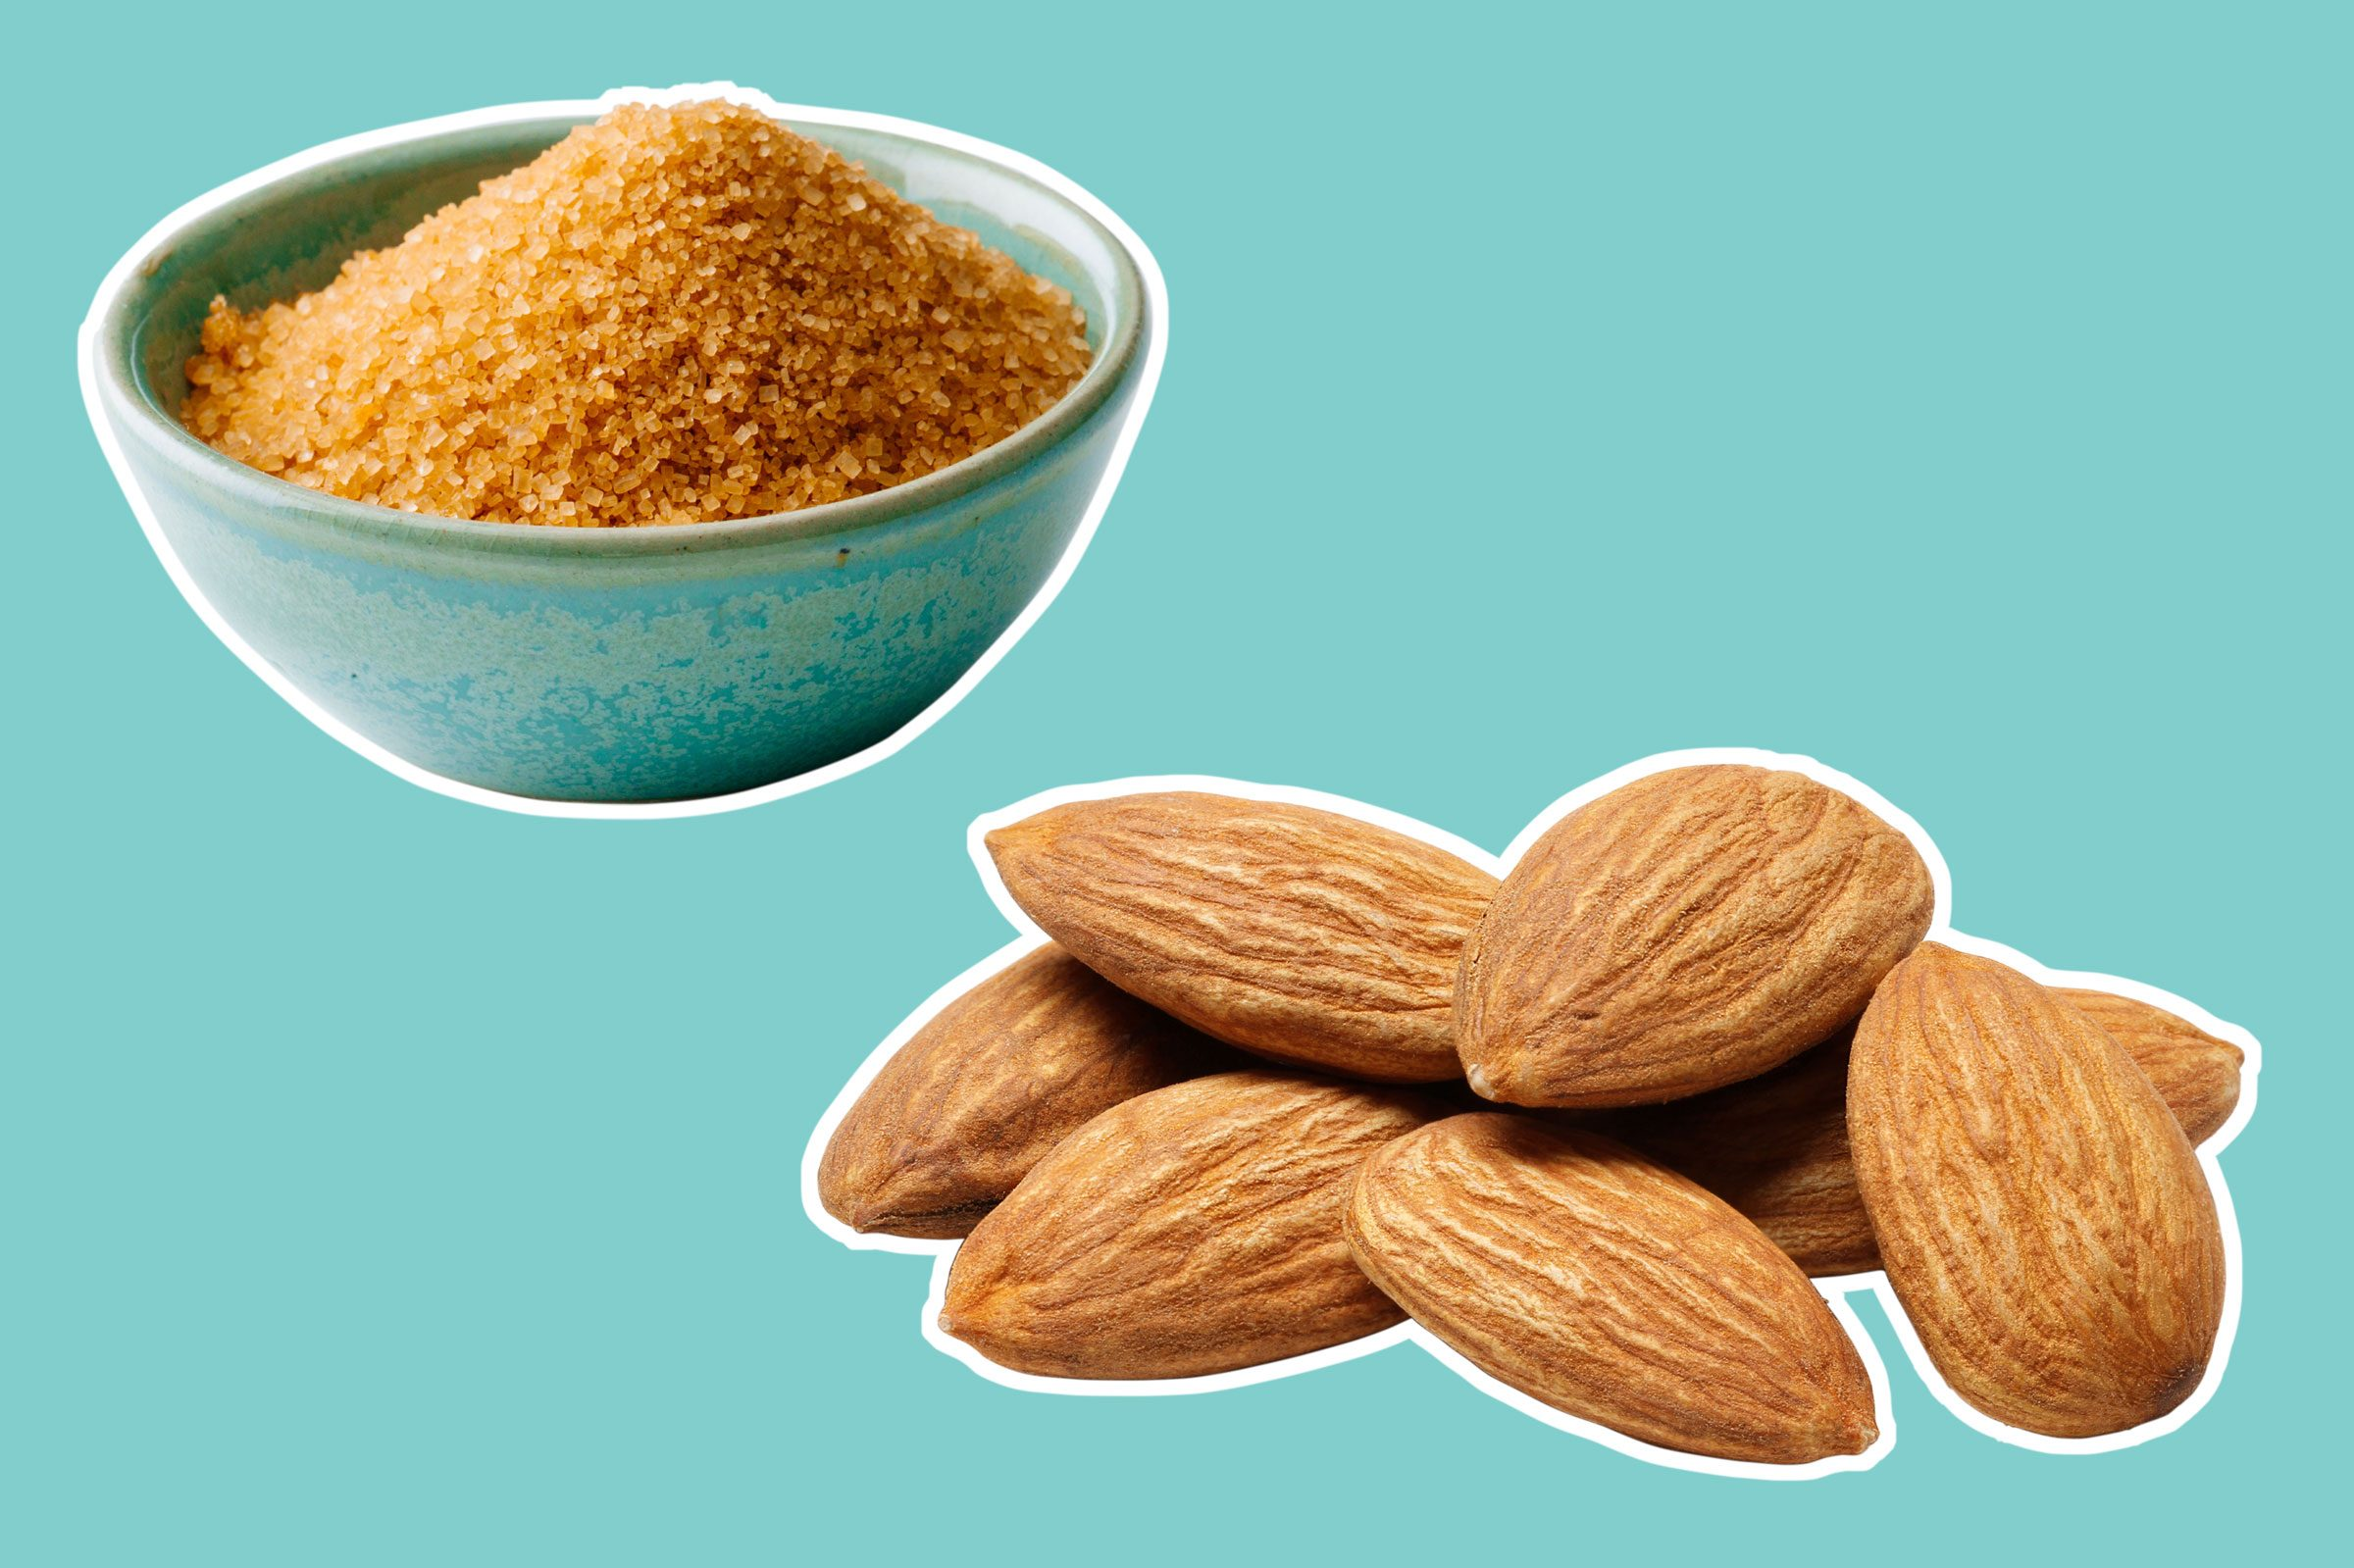 Almond-Sugar Facial Scrub